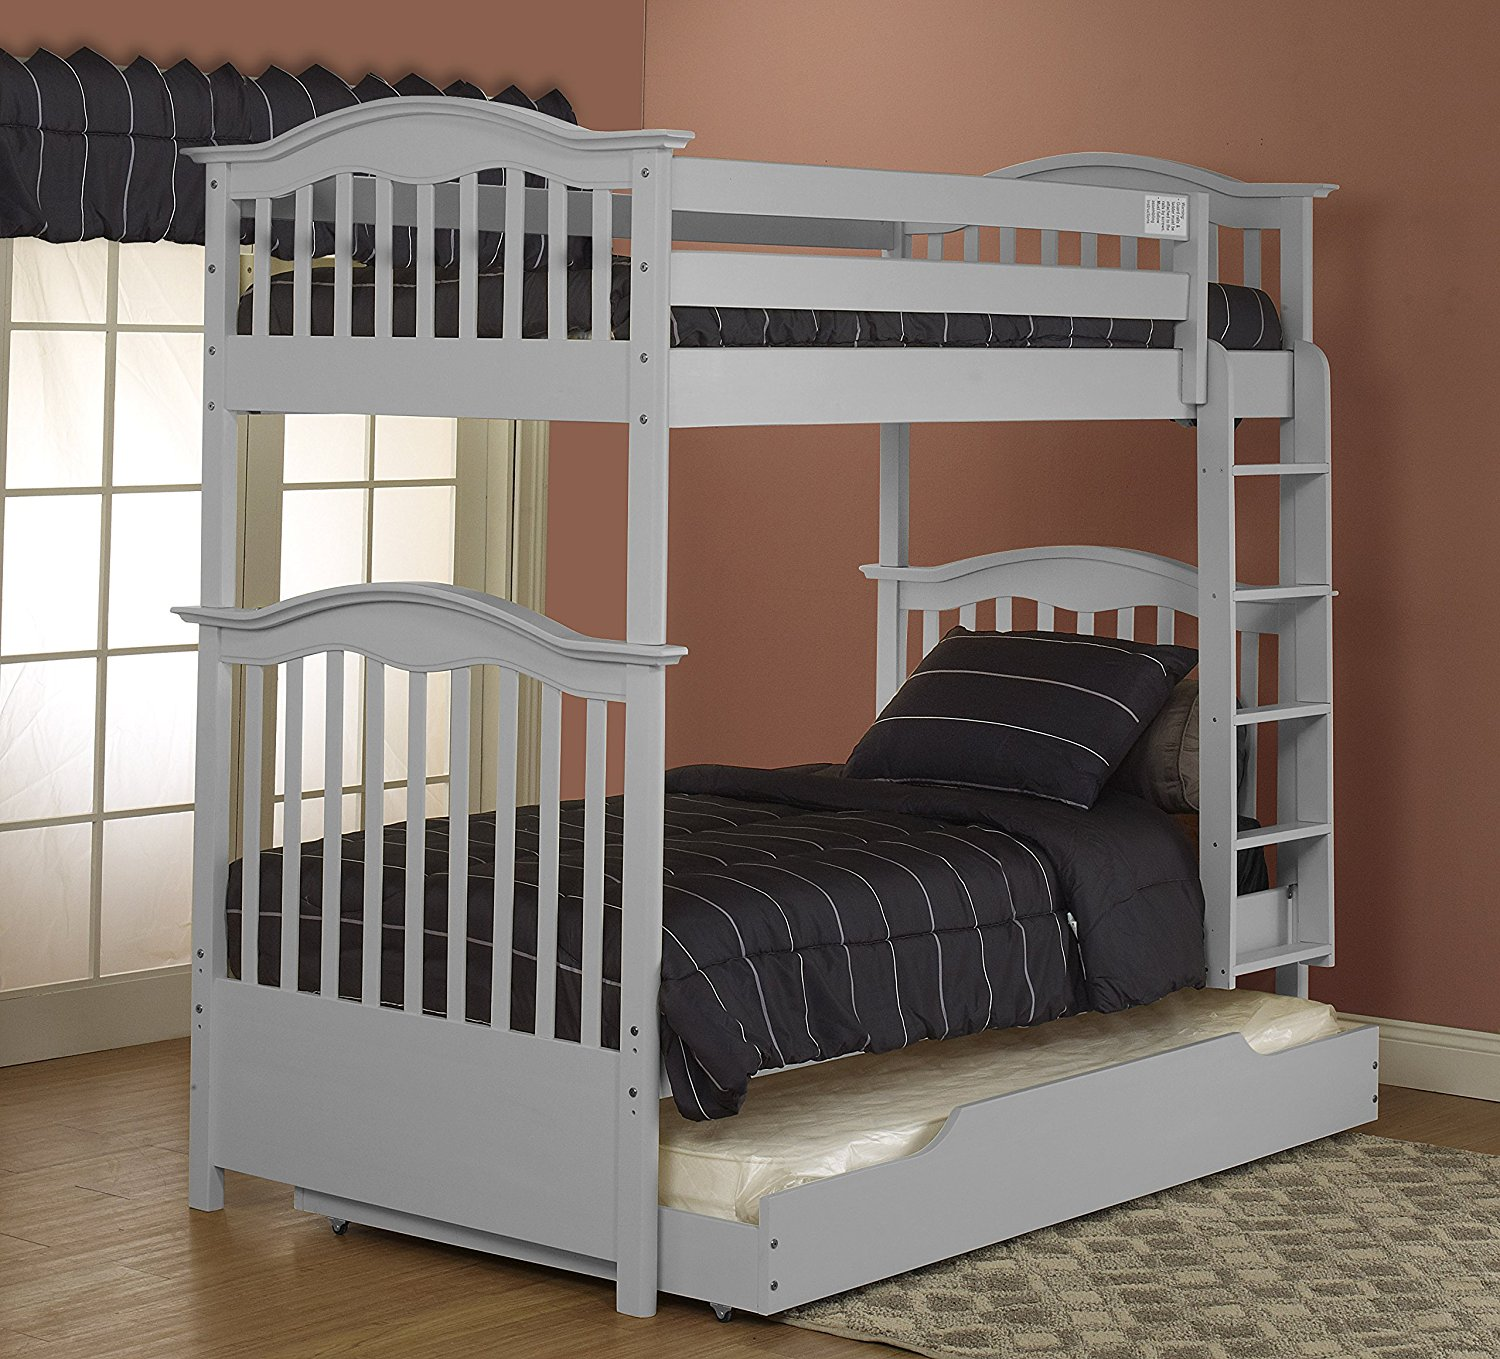 Orbelle Bunk Beds BB 480/39-G Gray